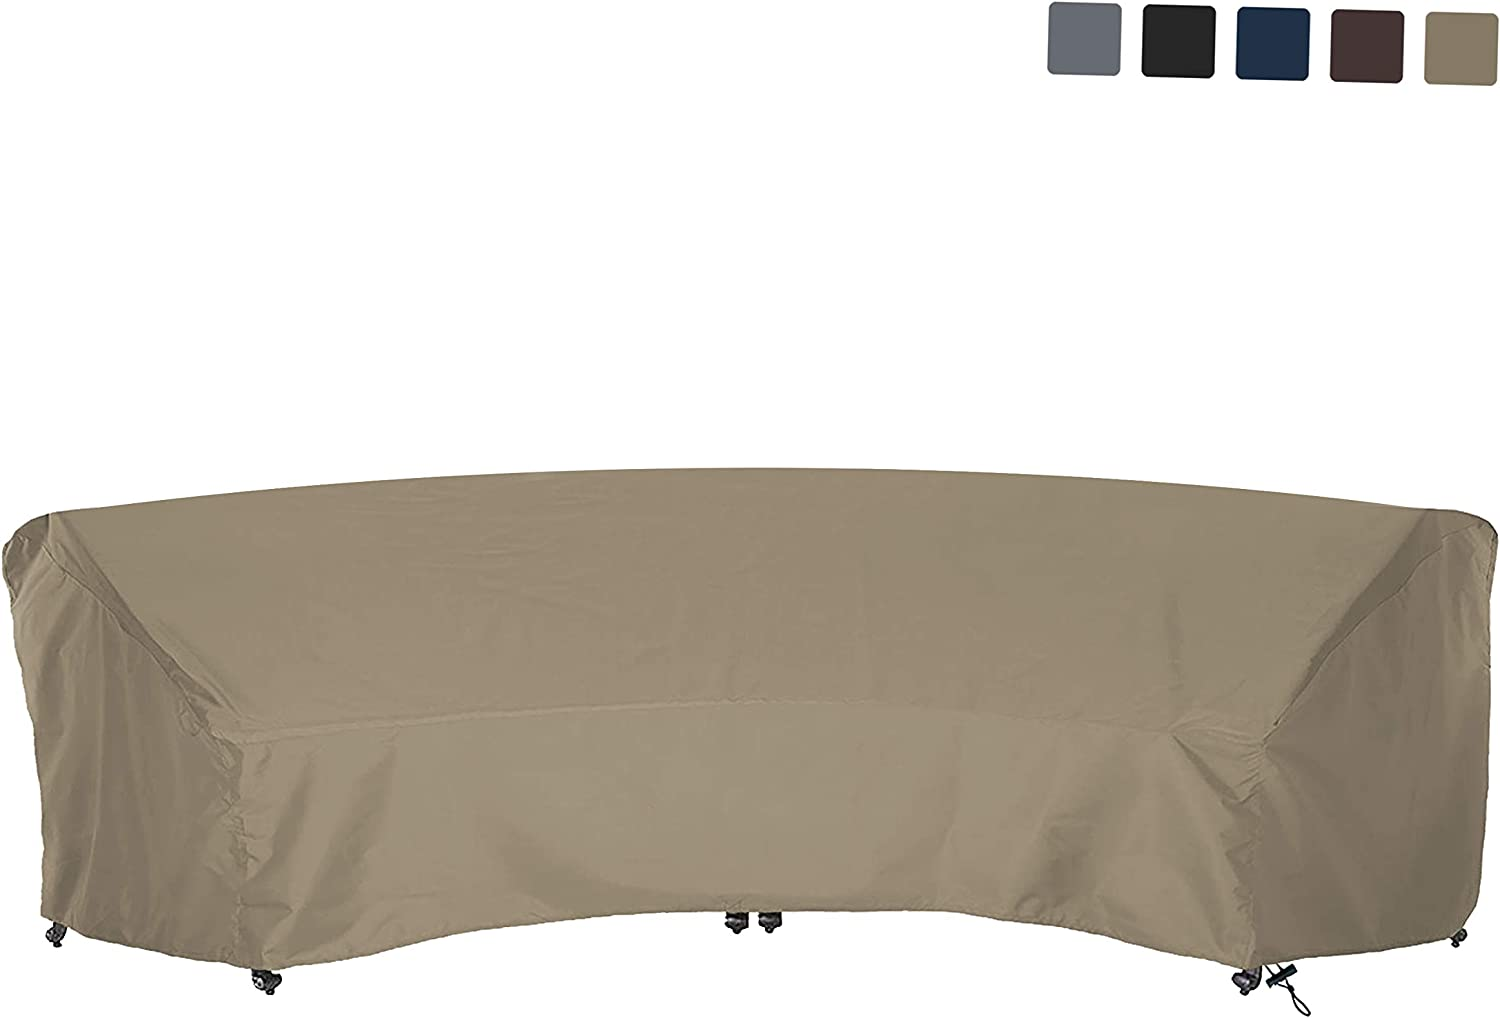 COVERS ALL Curved Sofa Cover 12 Oz Waterproof – 100 UV Weather Resistant Customize Outdoor Sofa Cover with Air Pockets and Drawstring with Snug Fit 150 L x 36 W x 38 H x 112 FL, Beige